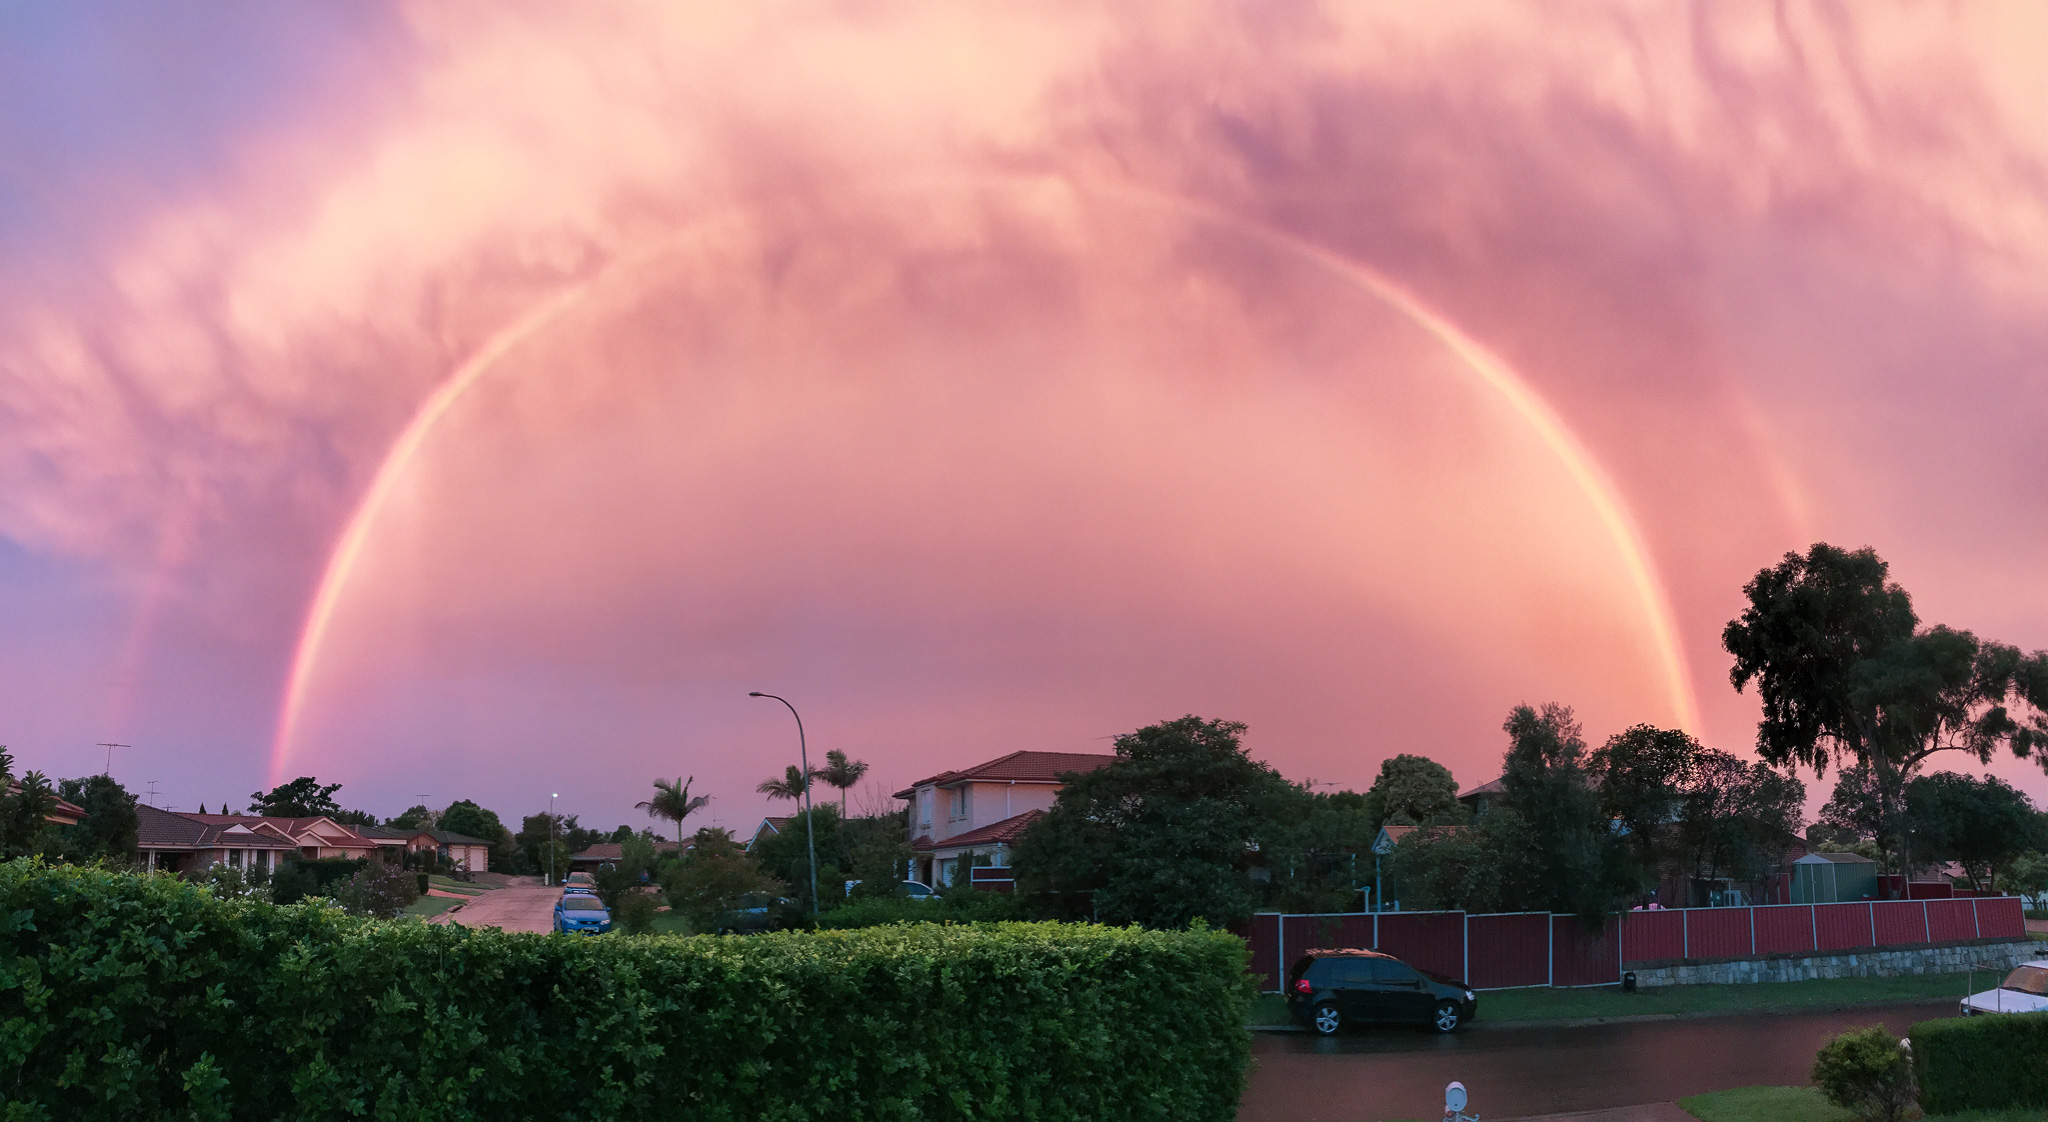 A panorama photo of a double rainbow over a suburban neighbourhood, with pink and purple clouds.